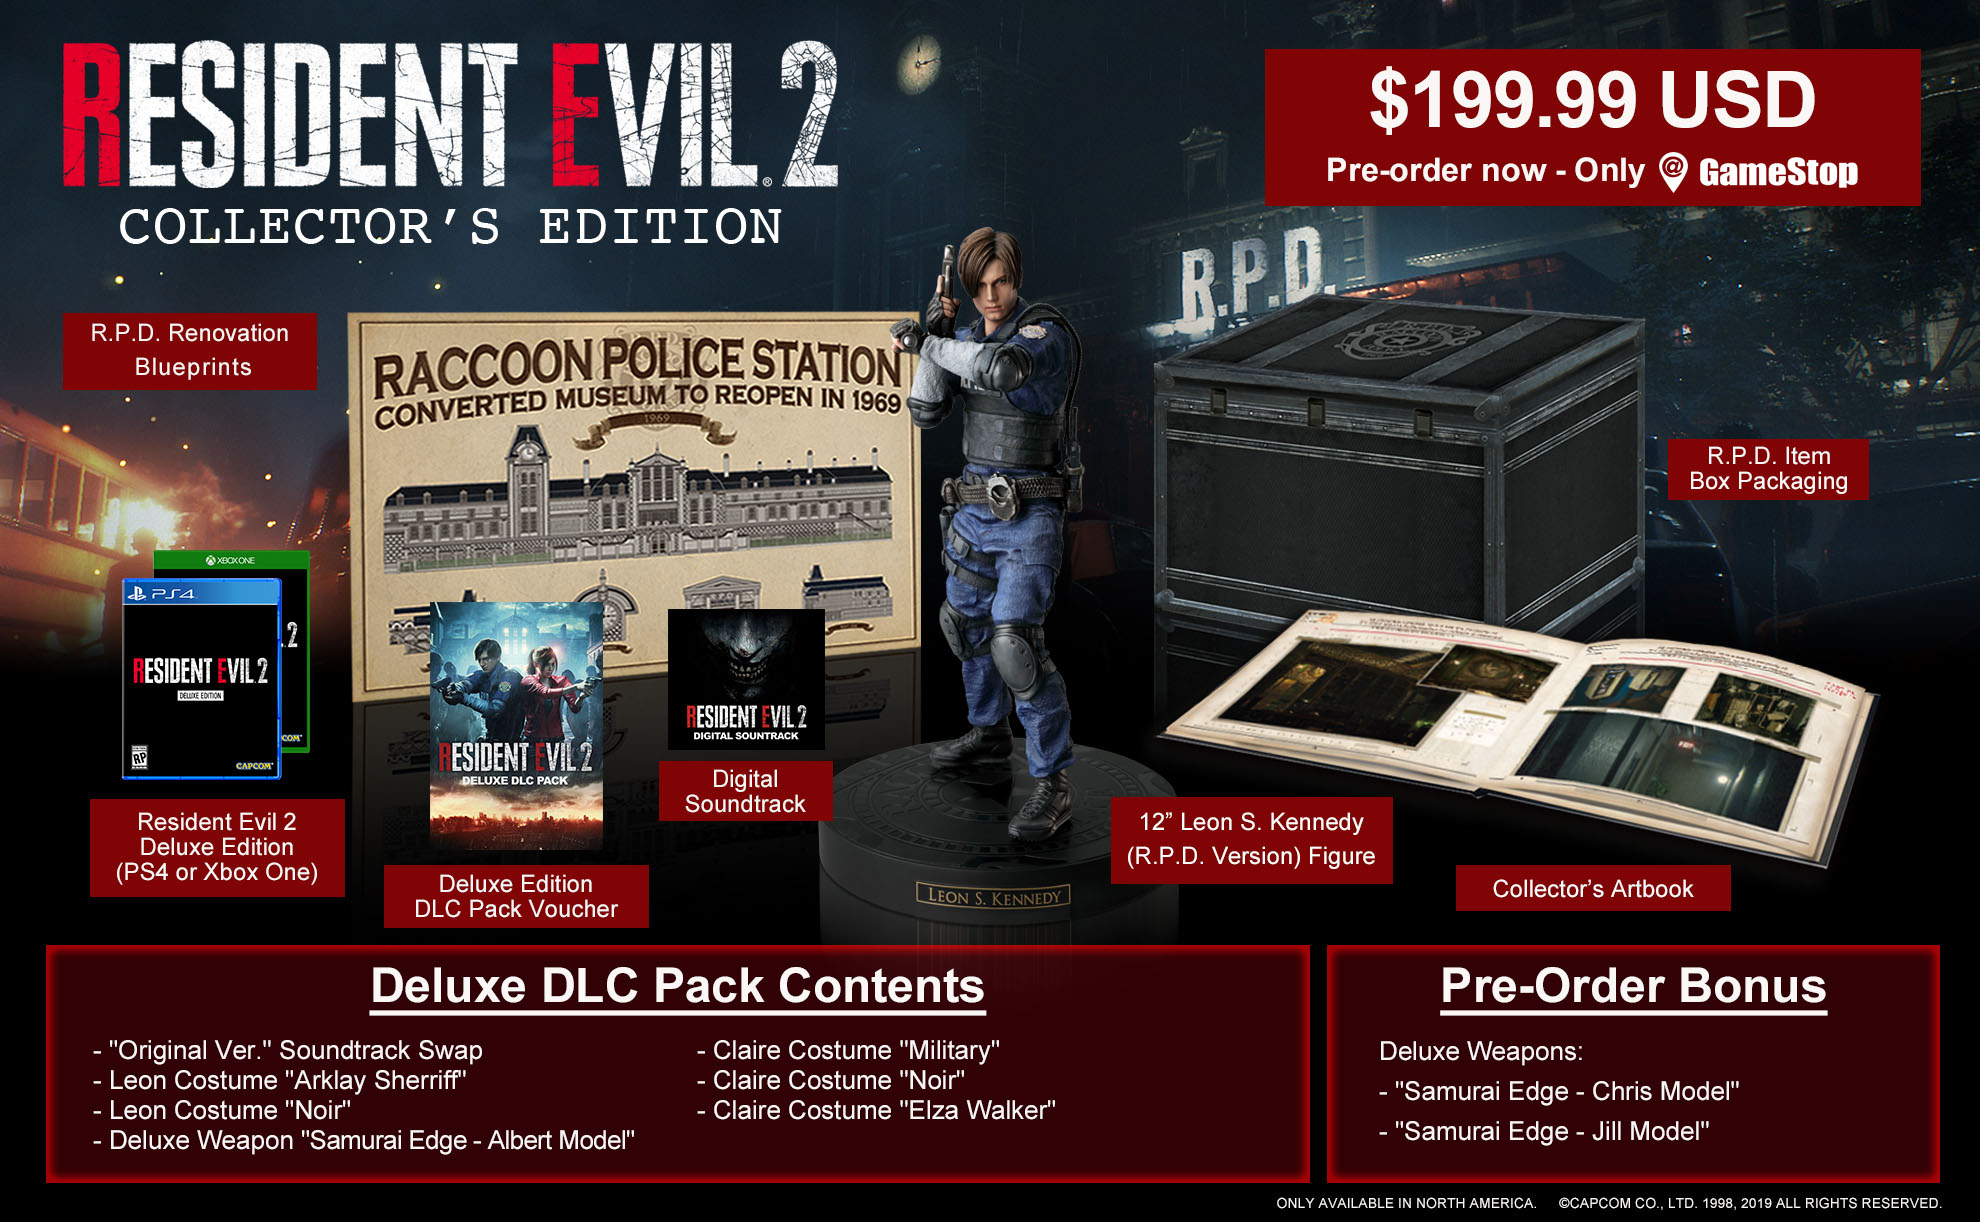 Resident Evil 2 Collectors Edition Revealed Up For Pre